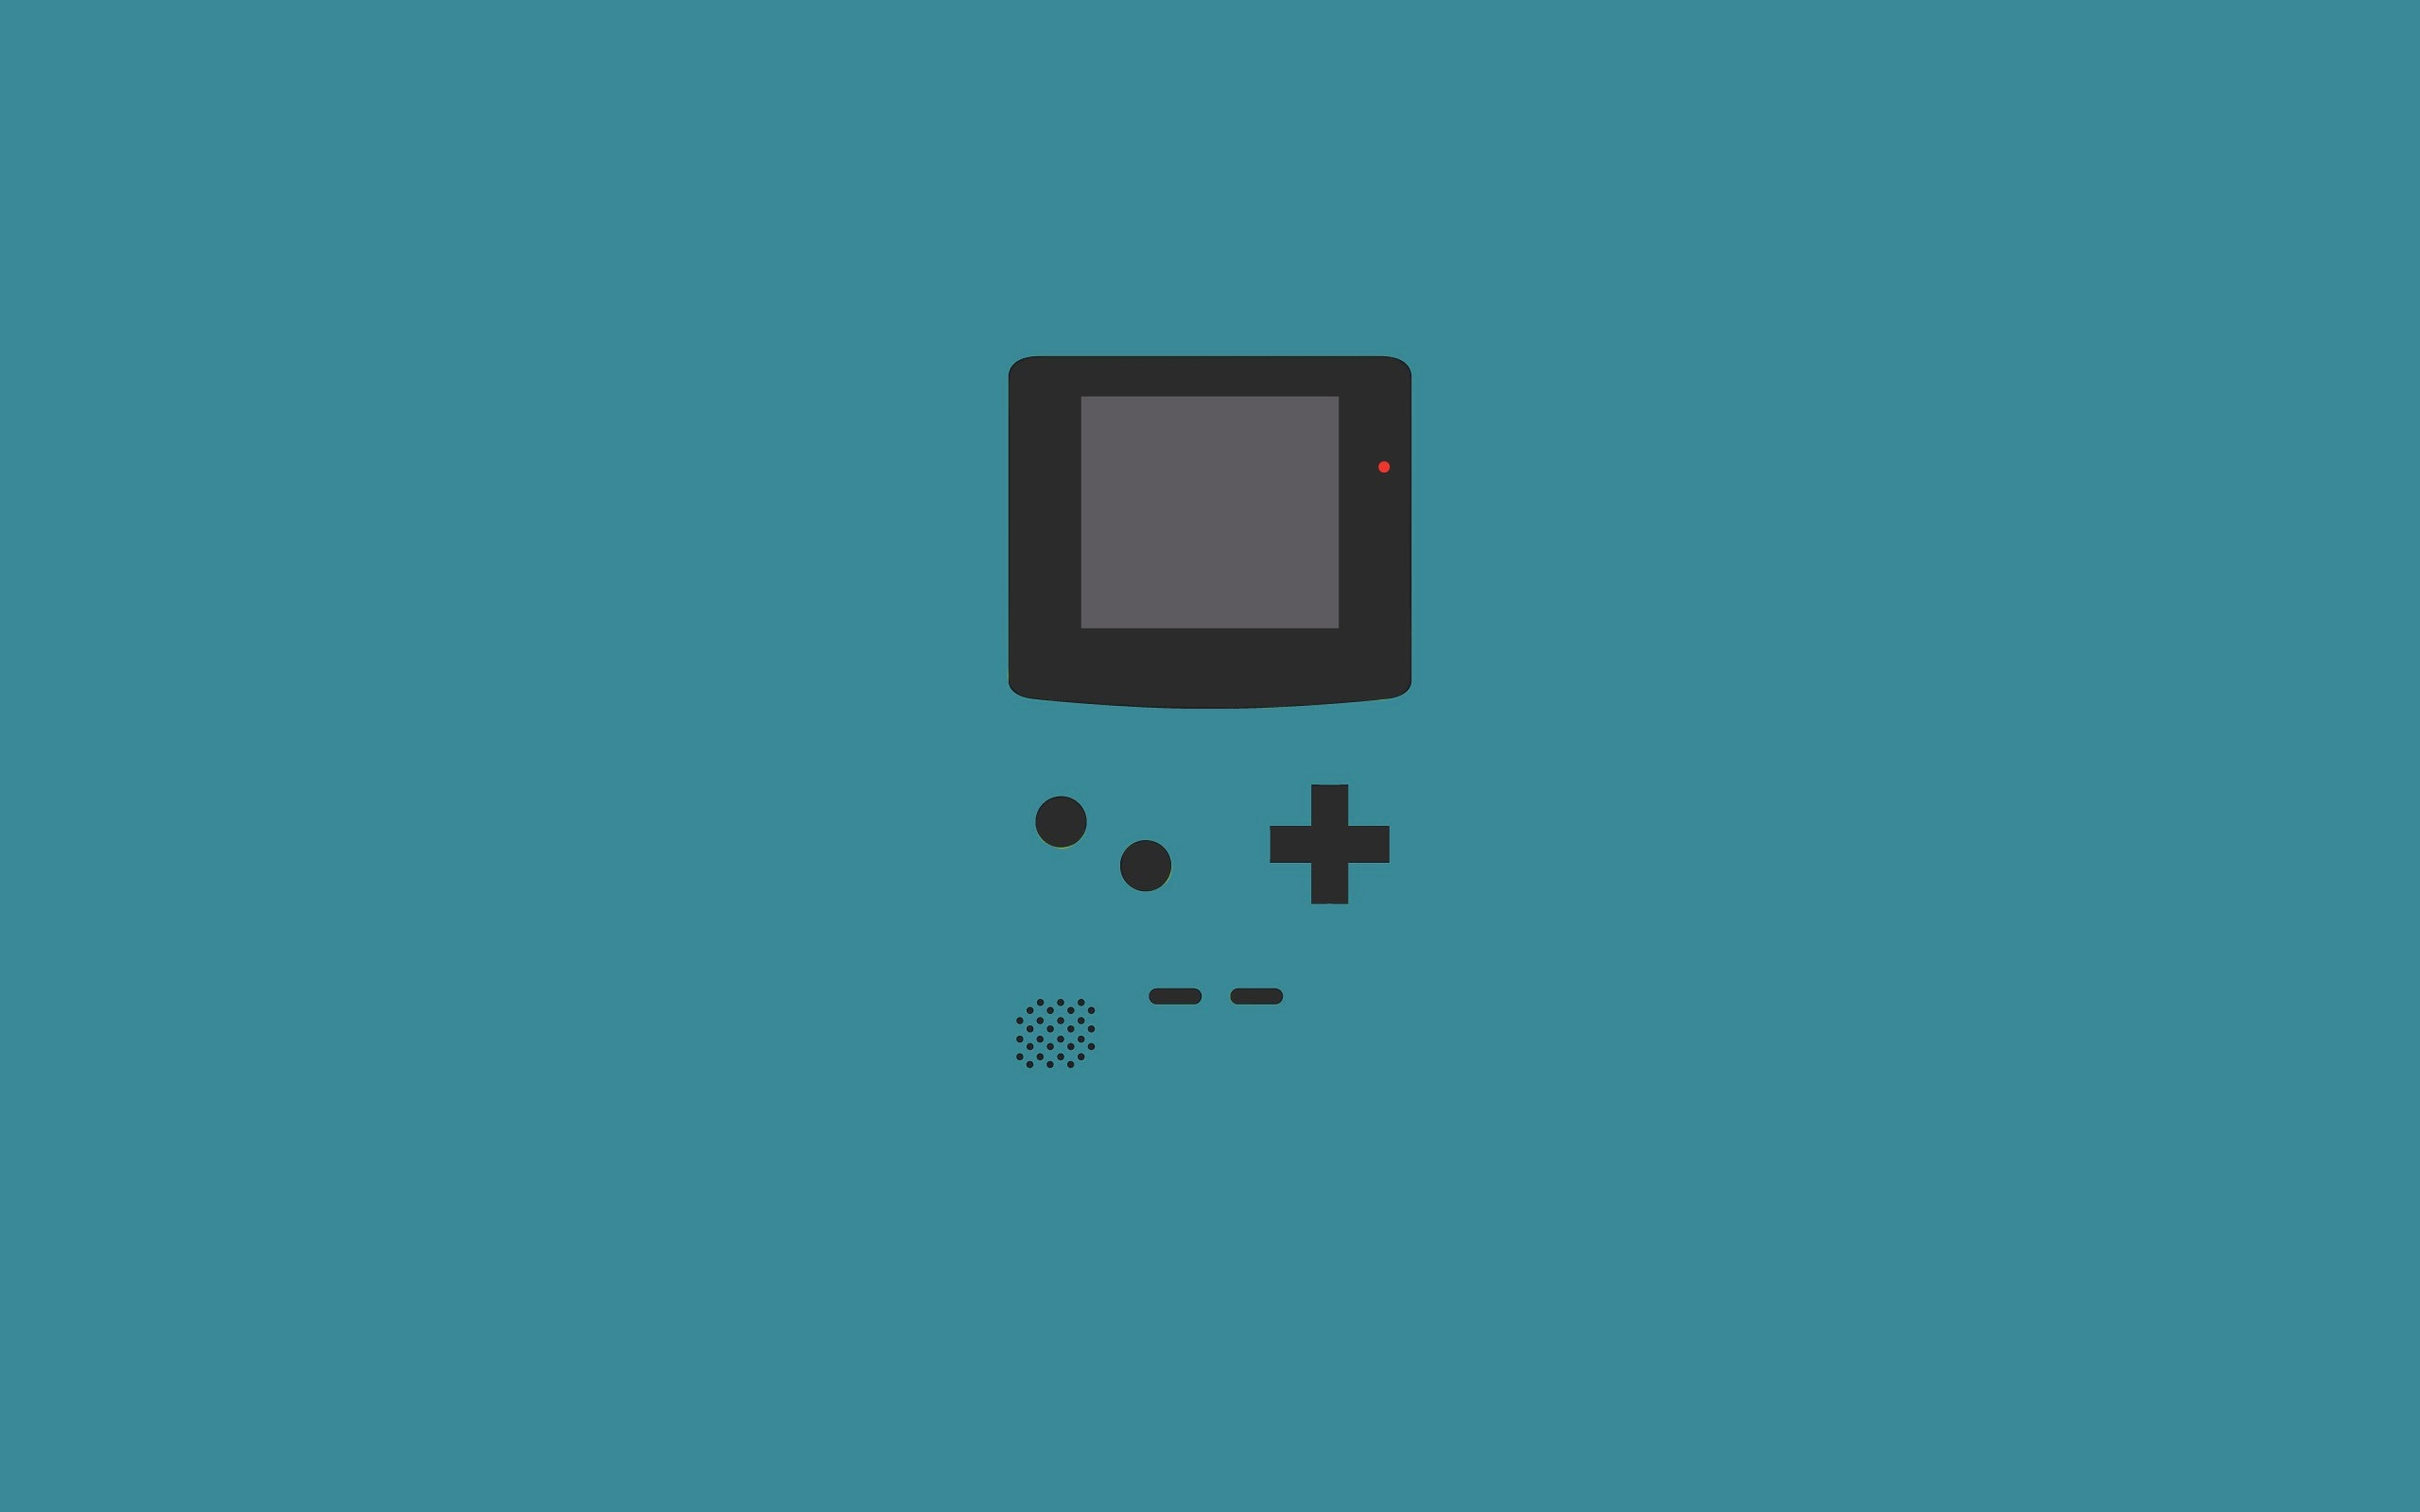 Windows 10 Wallpaper Hd 1920x1080 Cars Minimalistic Gameboy Wallpapers Hd Desktop And Mobile